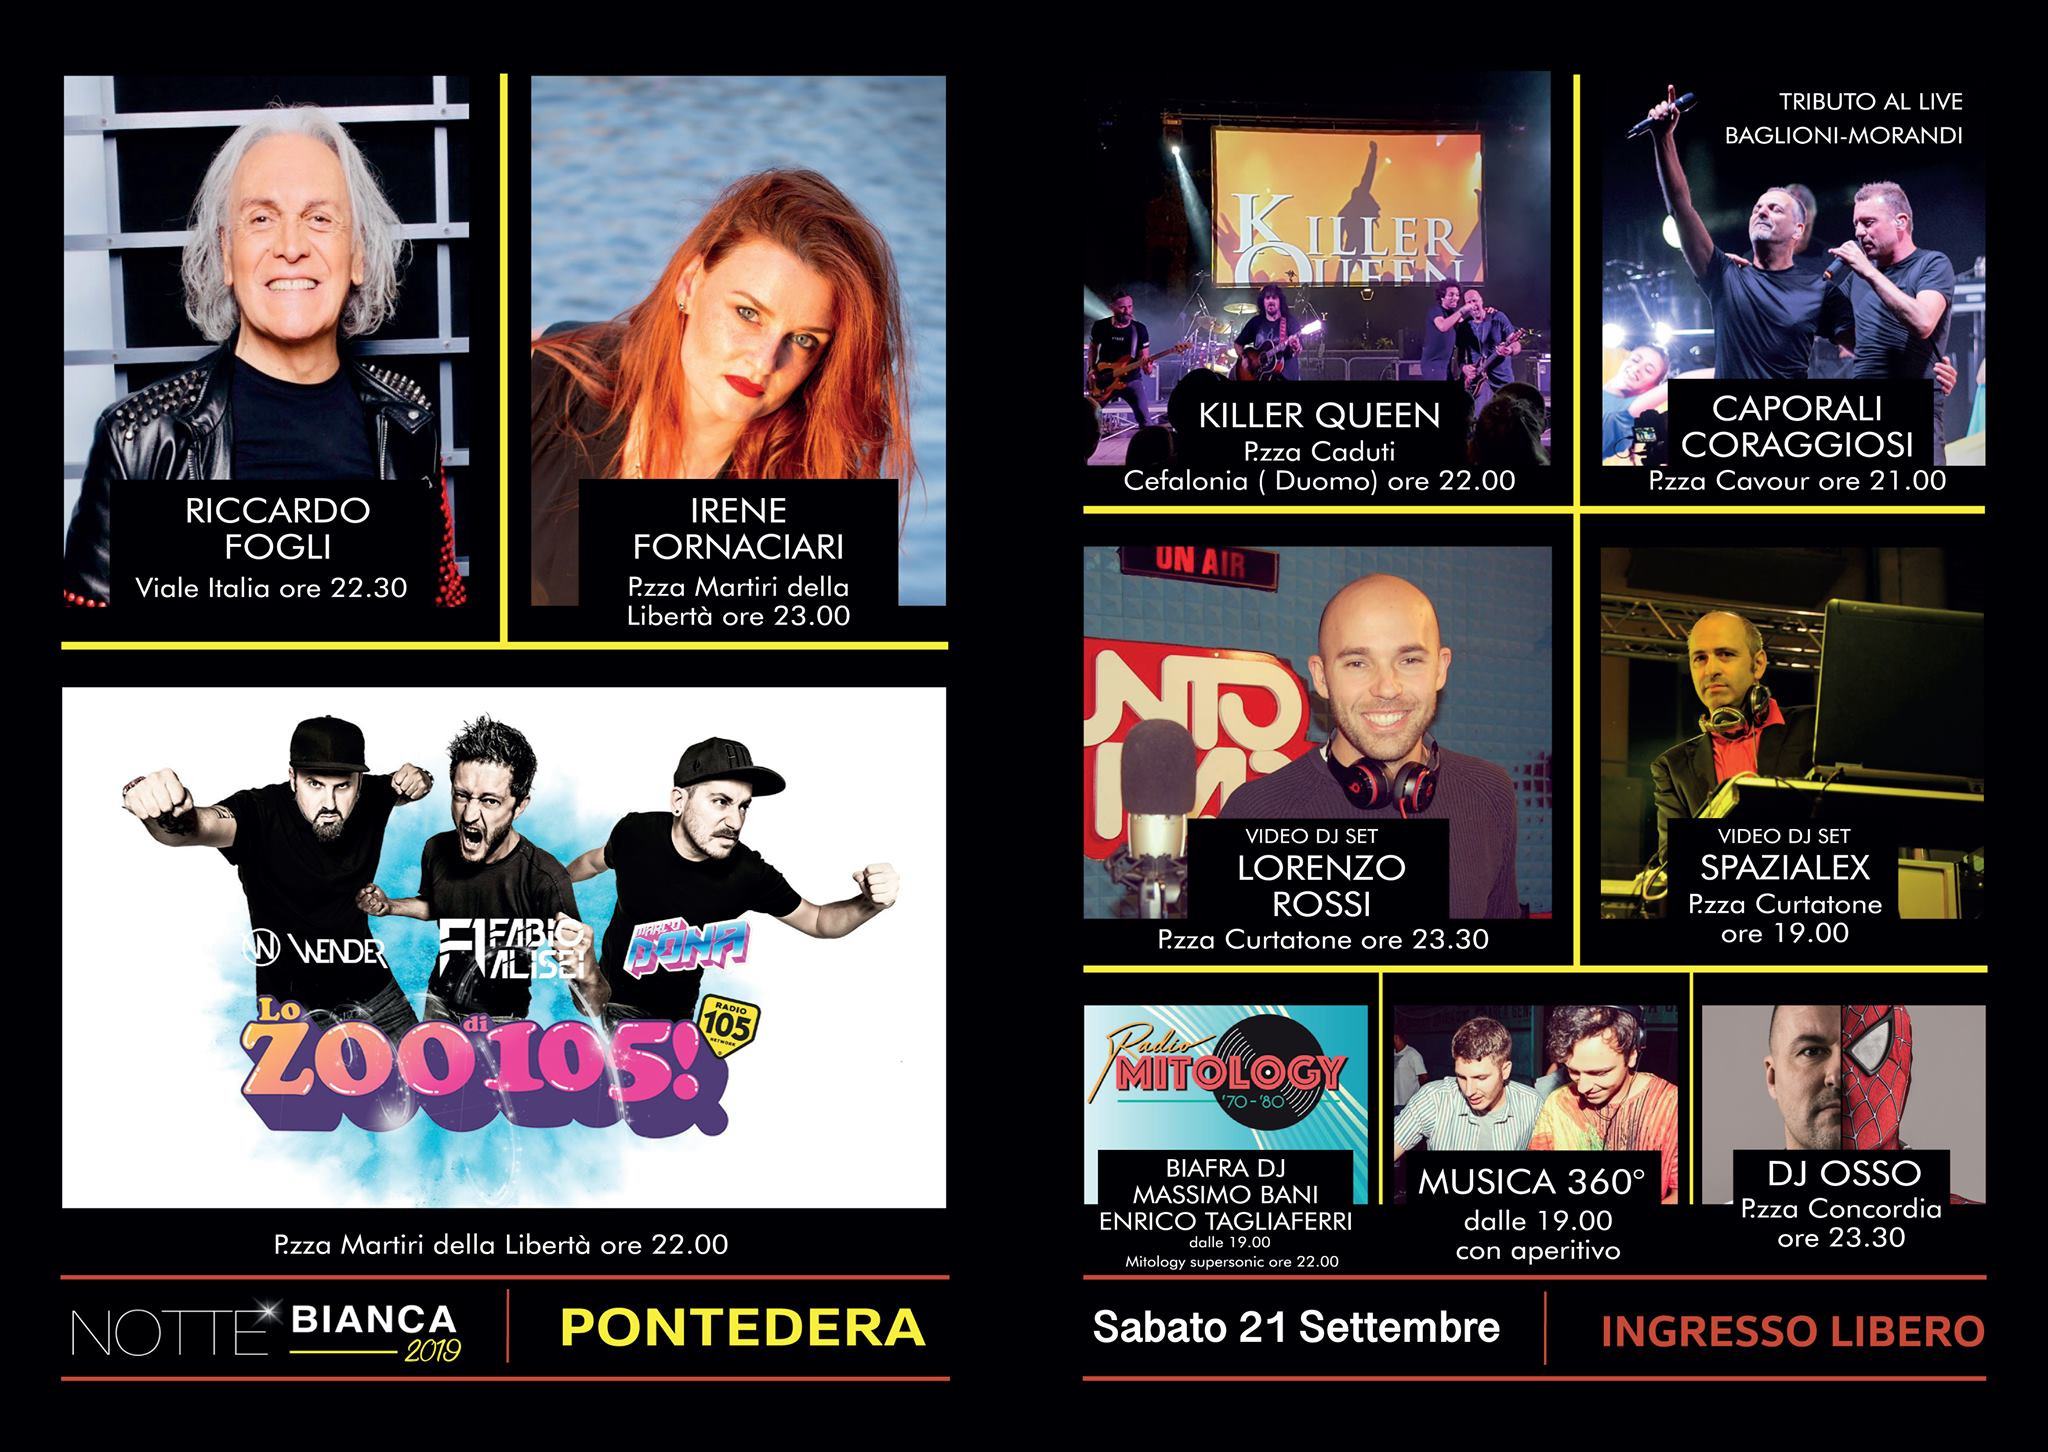 Notte Bianca – White Night | Pontedera